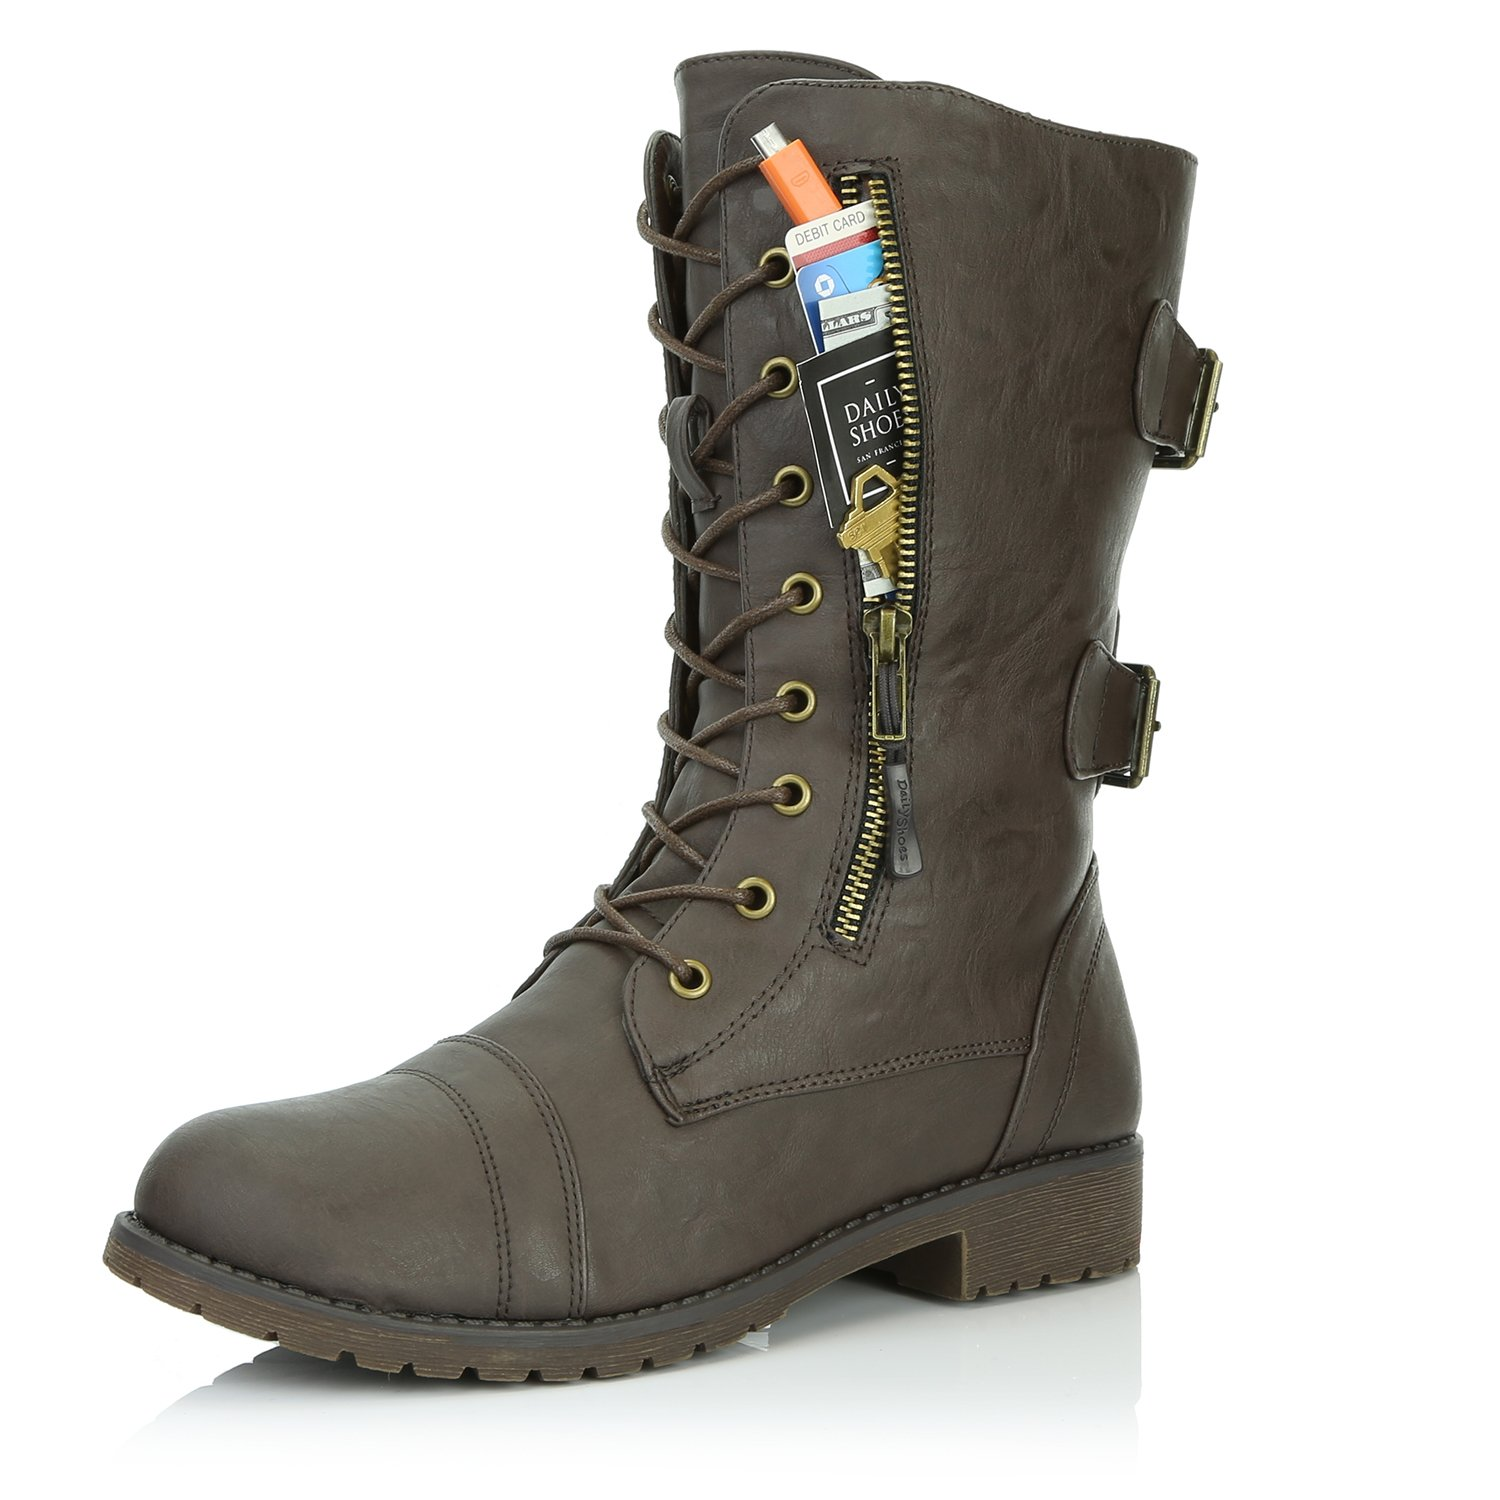 DailyShoes Women's Military Lace Up Buckle Combat Boots Mid Knee High Exclusive Credit Card Pocket, Brown Pu, 7.5 B(M)